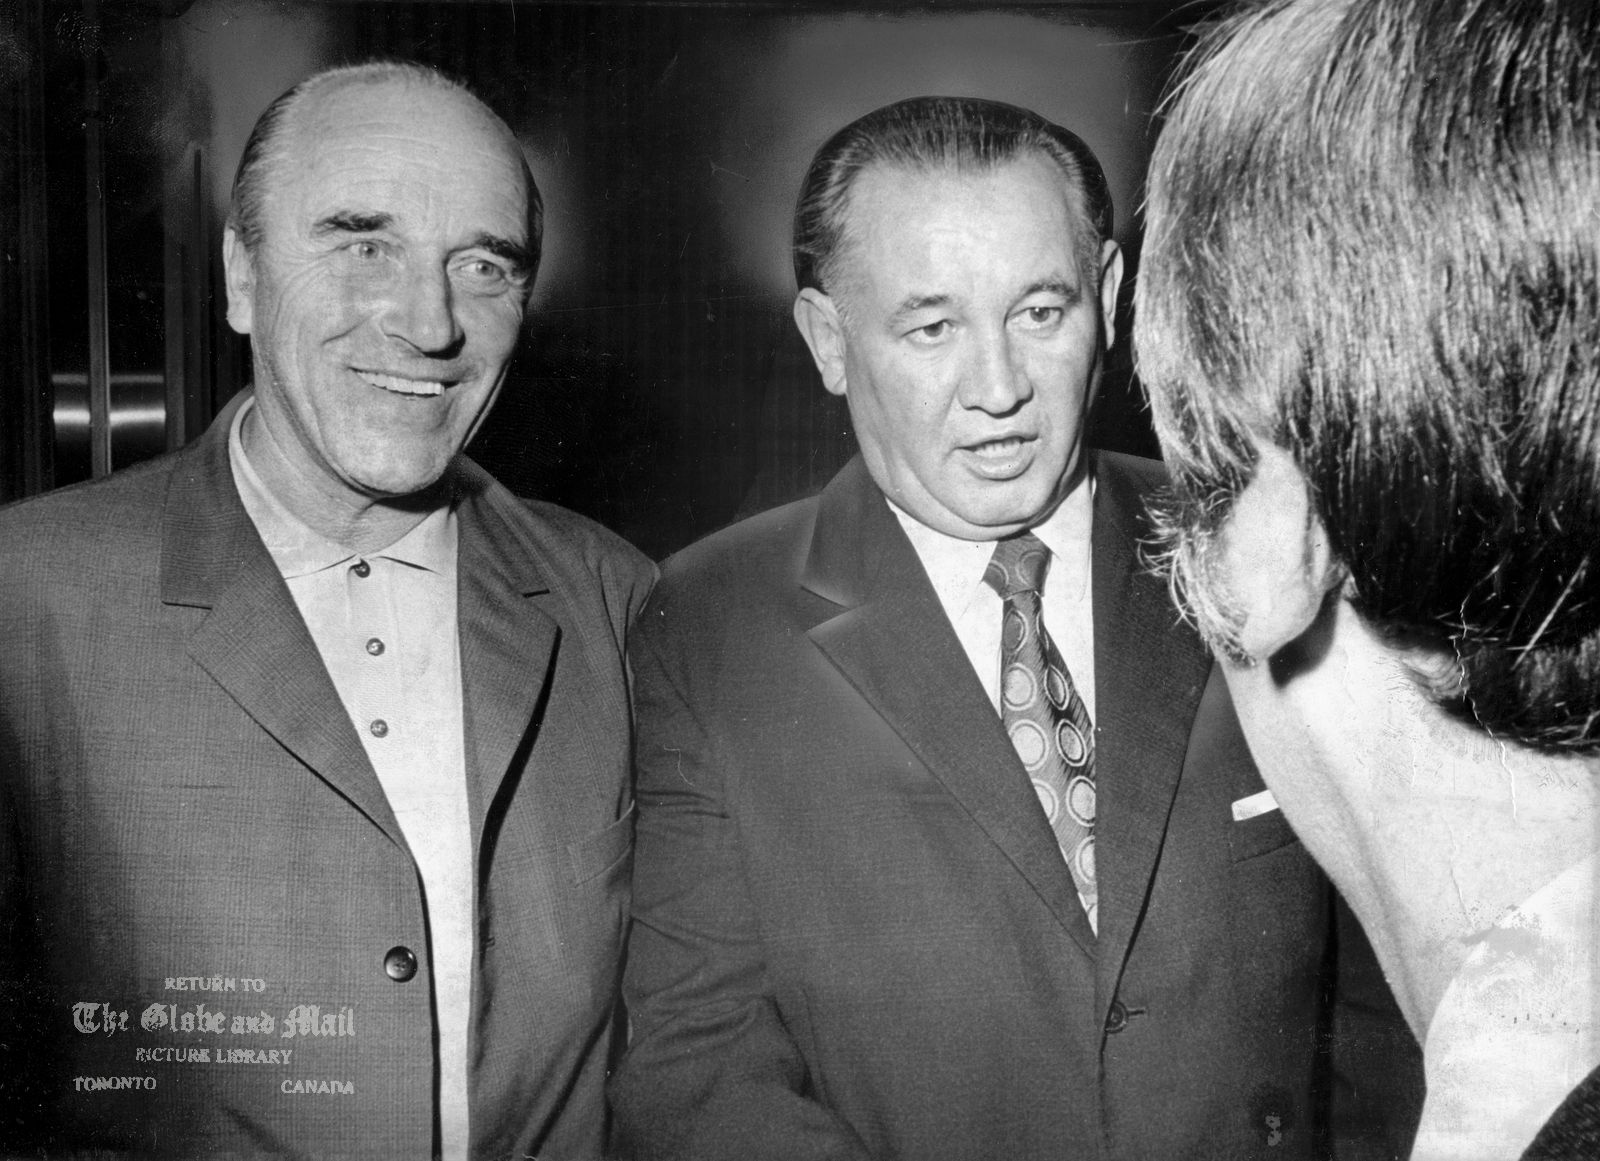 AUGUST 16, 1972 -- TORONTO -- RUSSIAN OFFICIALS -- Arkadi Cherneshev, left, and Boris Kulagin, observers from the Russian National hockey team are in Toronto to watch Team Canada practice, August 16, 1972. The first game in the Canada-Russia Summit Series is to be held Sept. 2, 1972 in Montreal. Photo by Harry McLorinan / The Globe and Mail. Originally published August 17, 1972, page A36